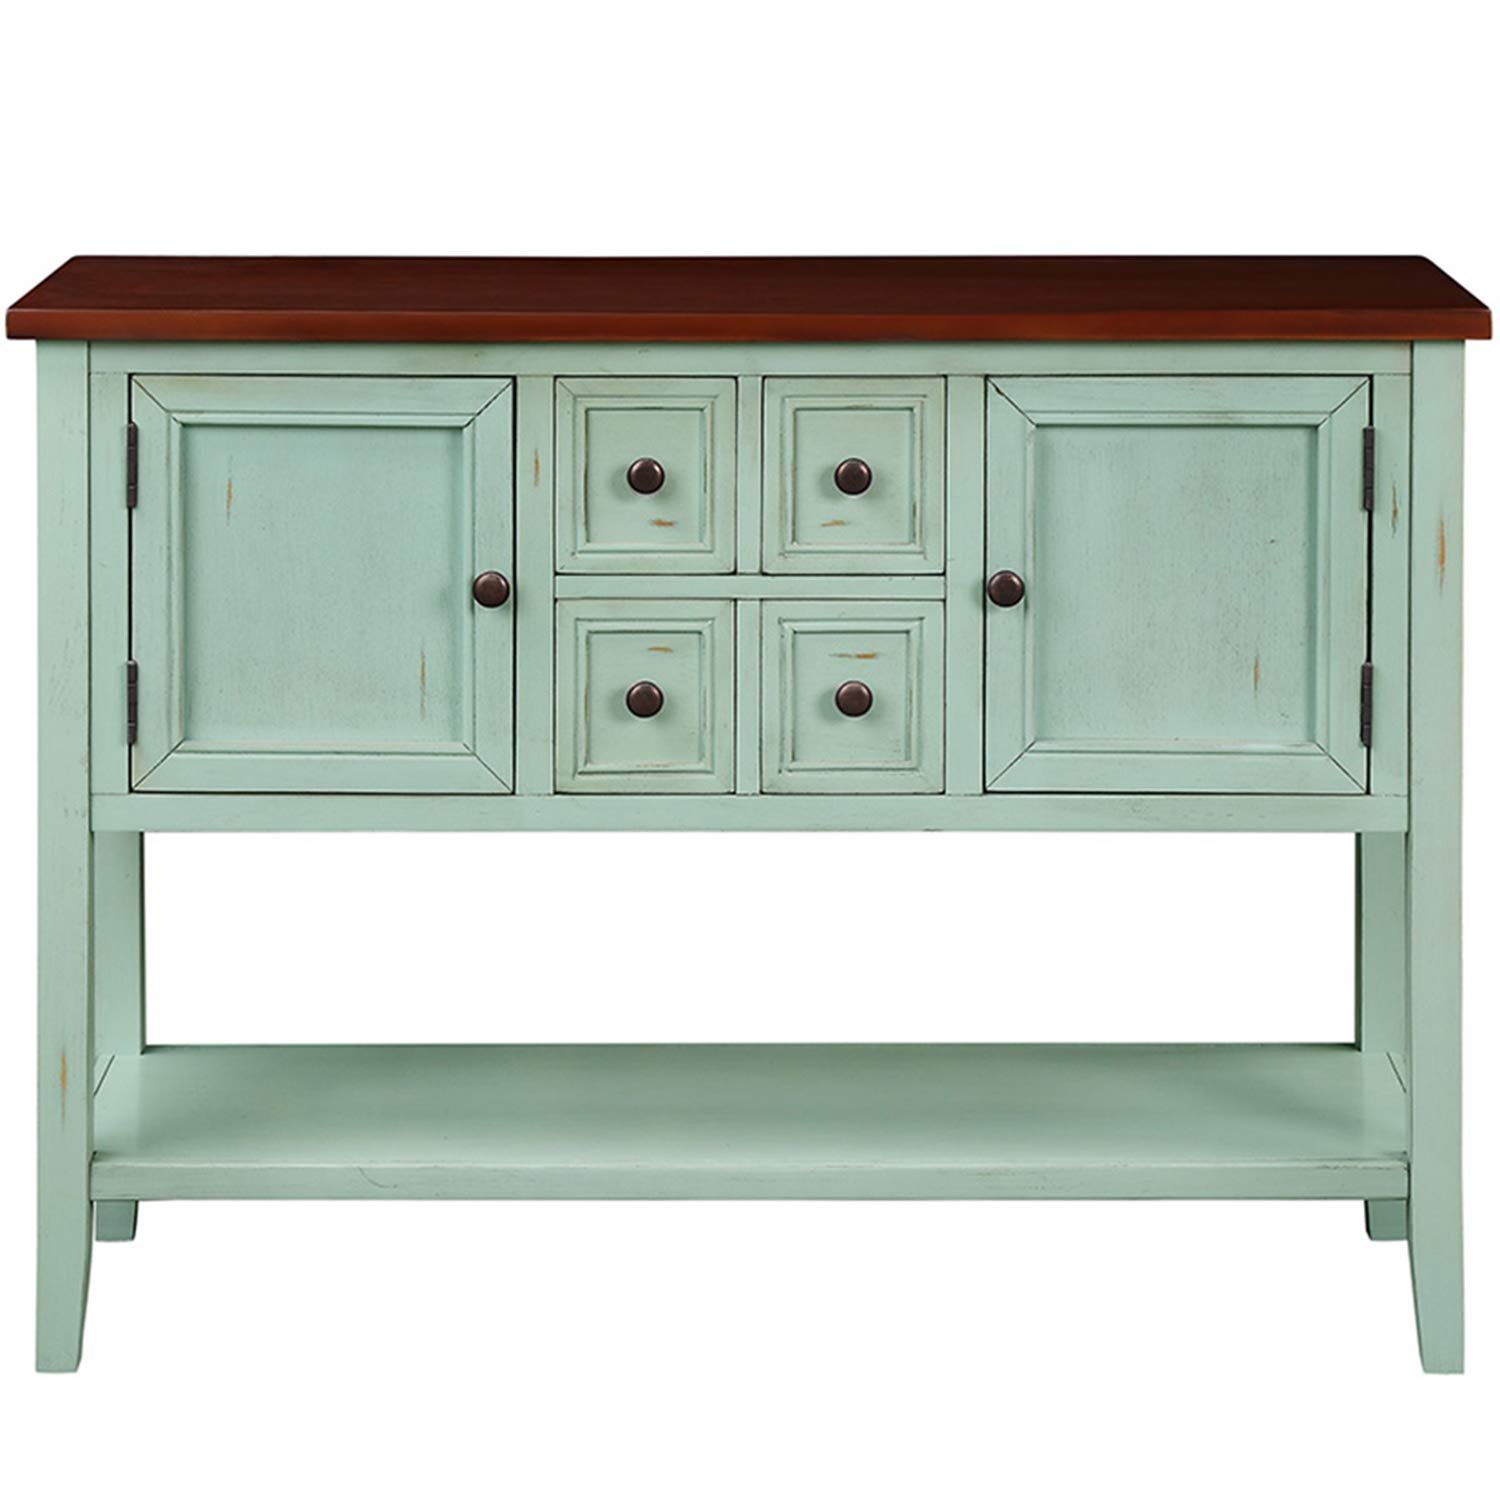 P PURLOVE Console Table Buffet Table Sideboard with Four Storage Drawers Two Cabinets and Bottom Shelf (Blue) by P PURLOVE (Image #7)